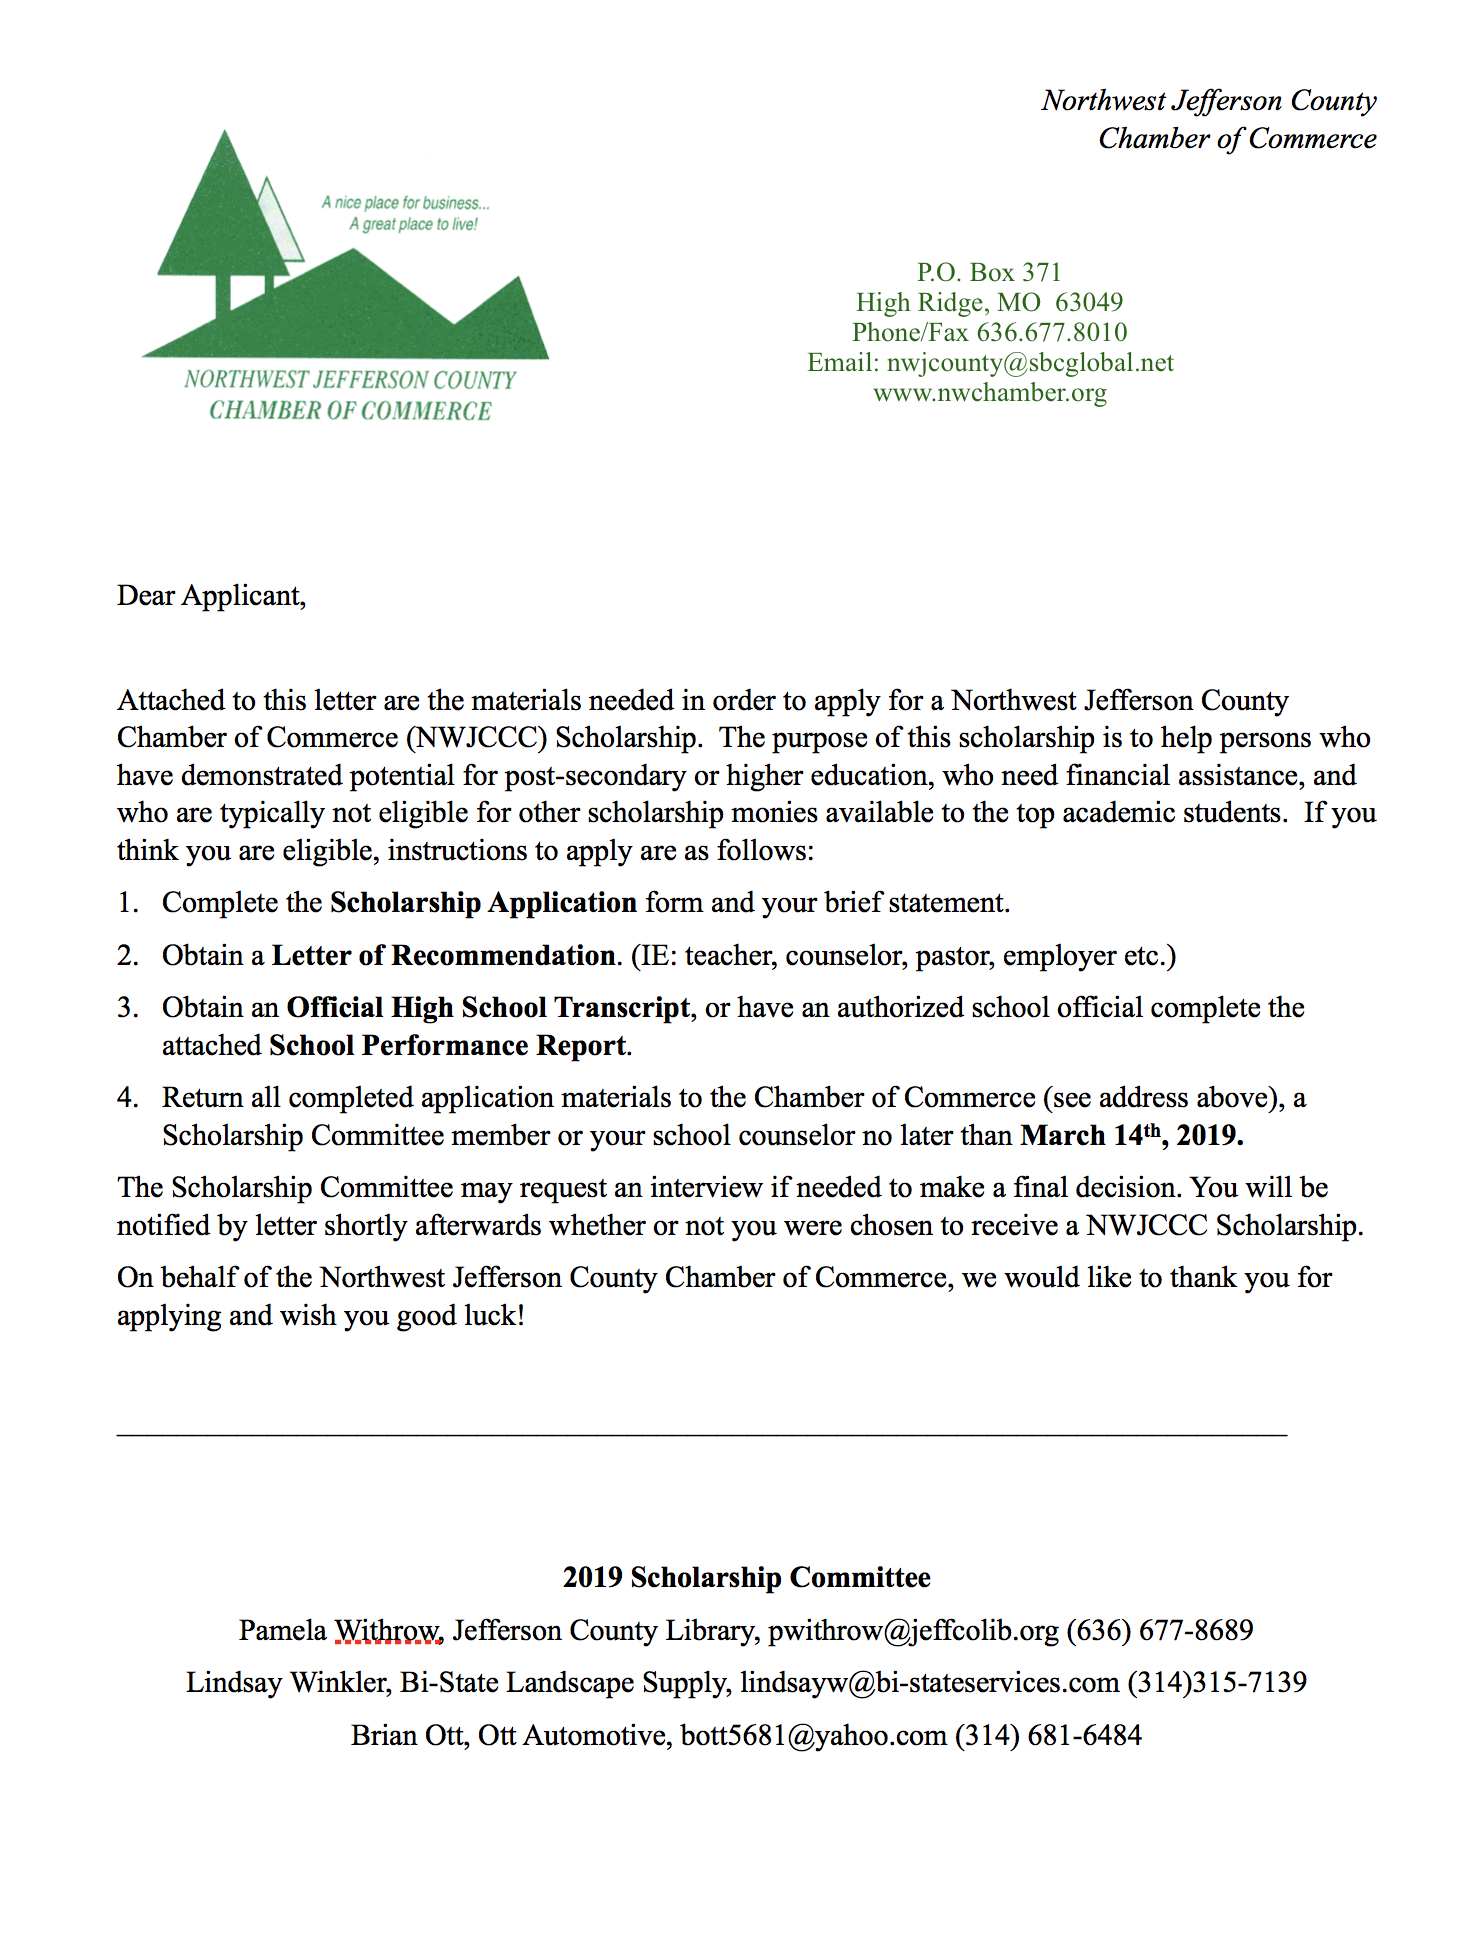 2019 Northwest Jefferson County Chamber Scholarship Application